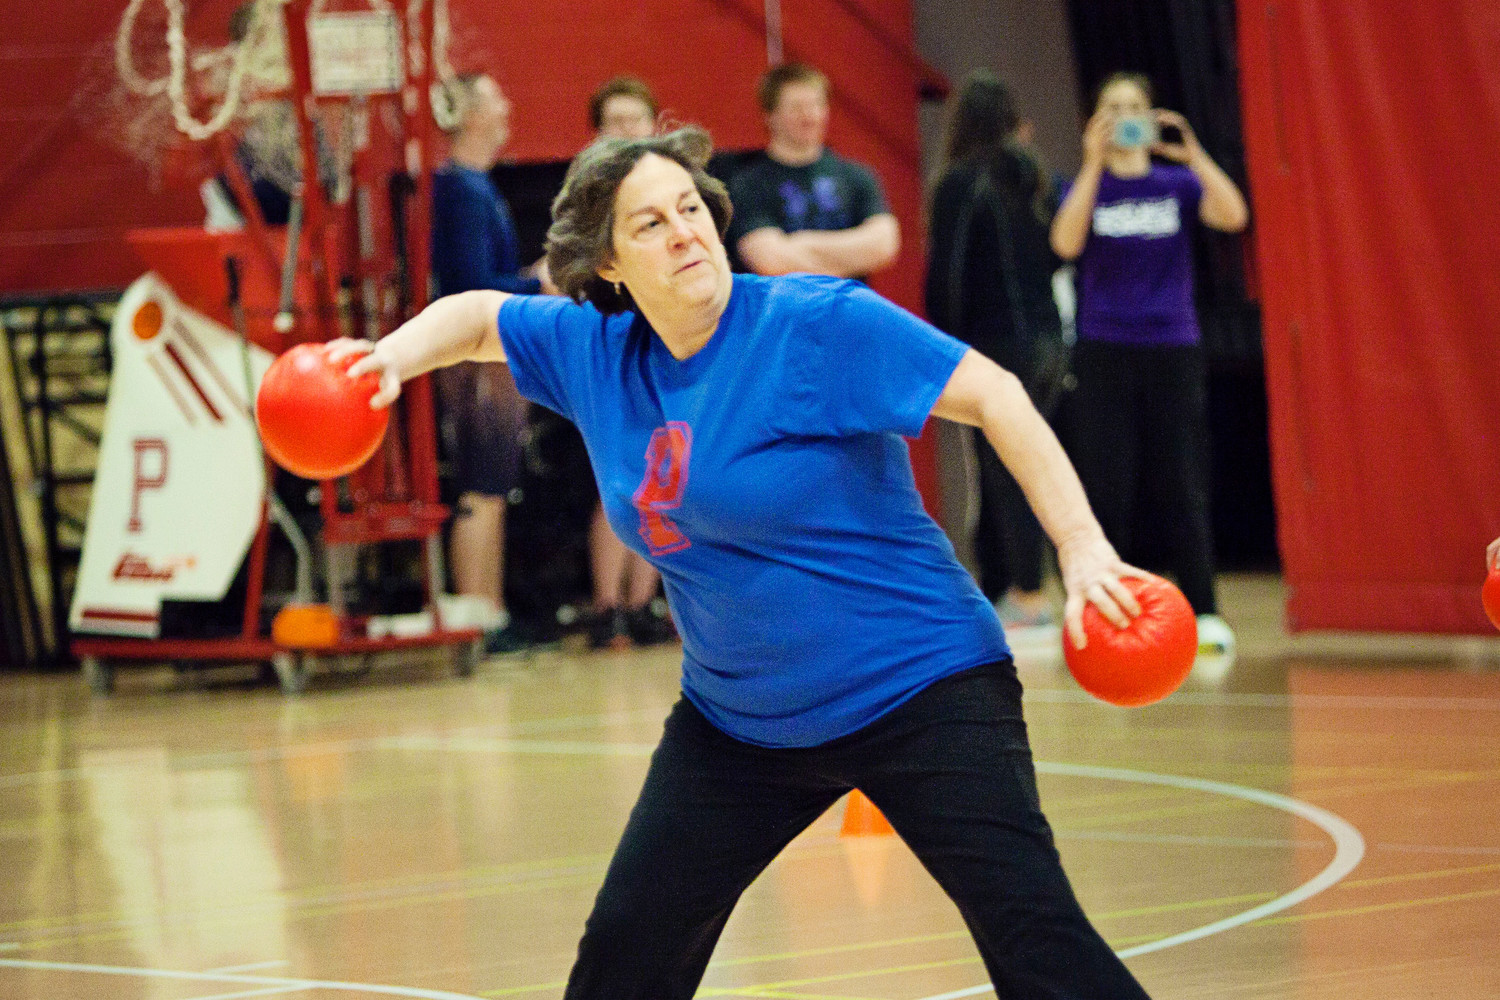 Emily Copeland, vice-chairwoman of the School Committee, hurls a ball while competing for The Hard Targets.